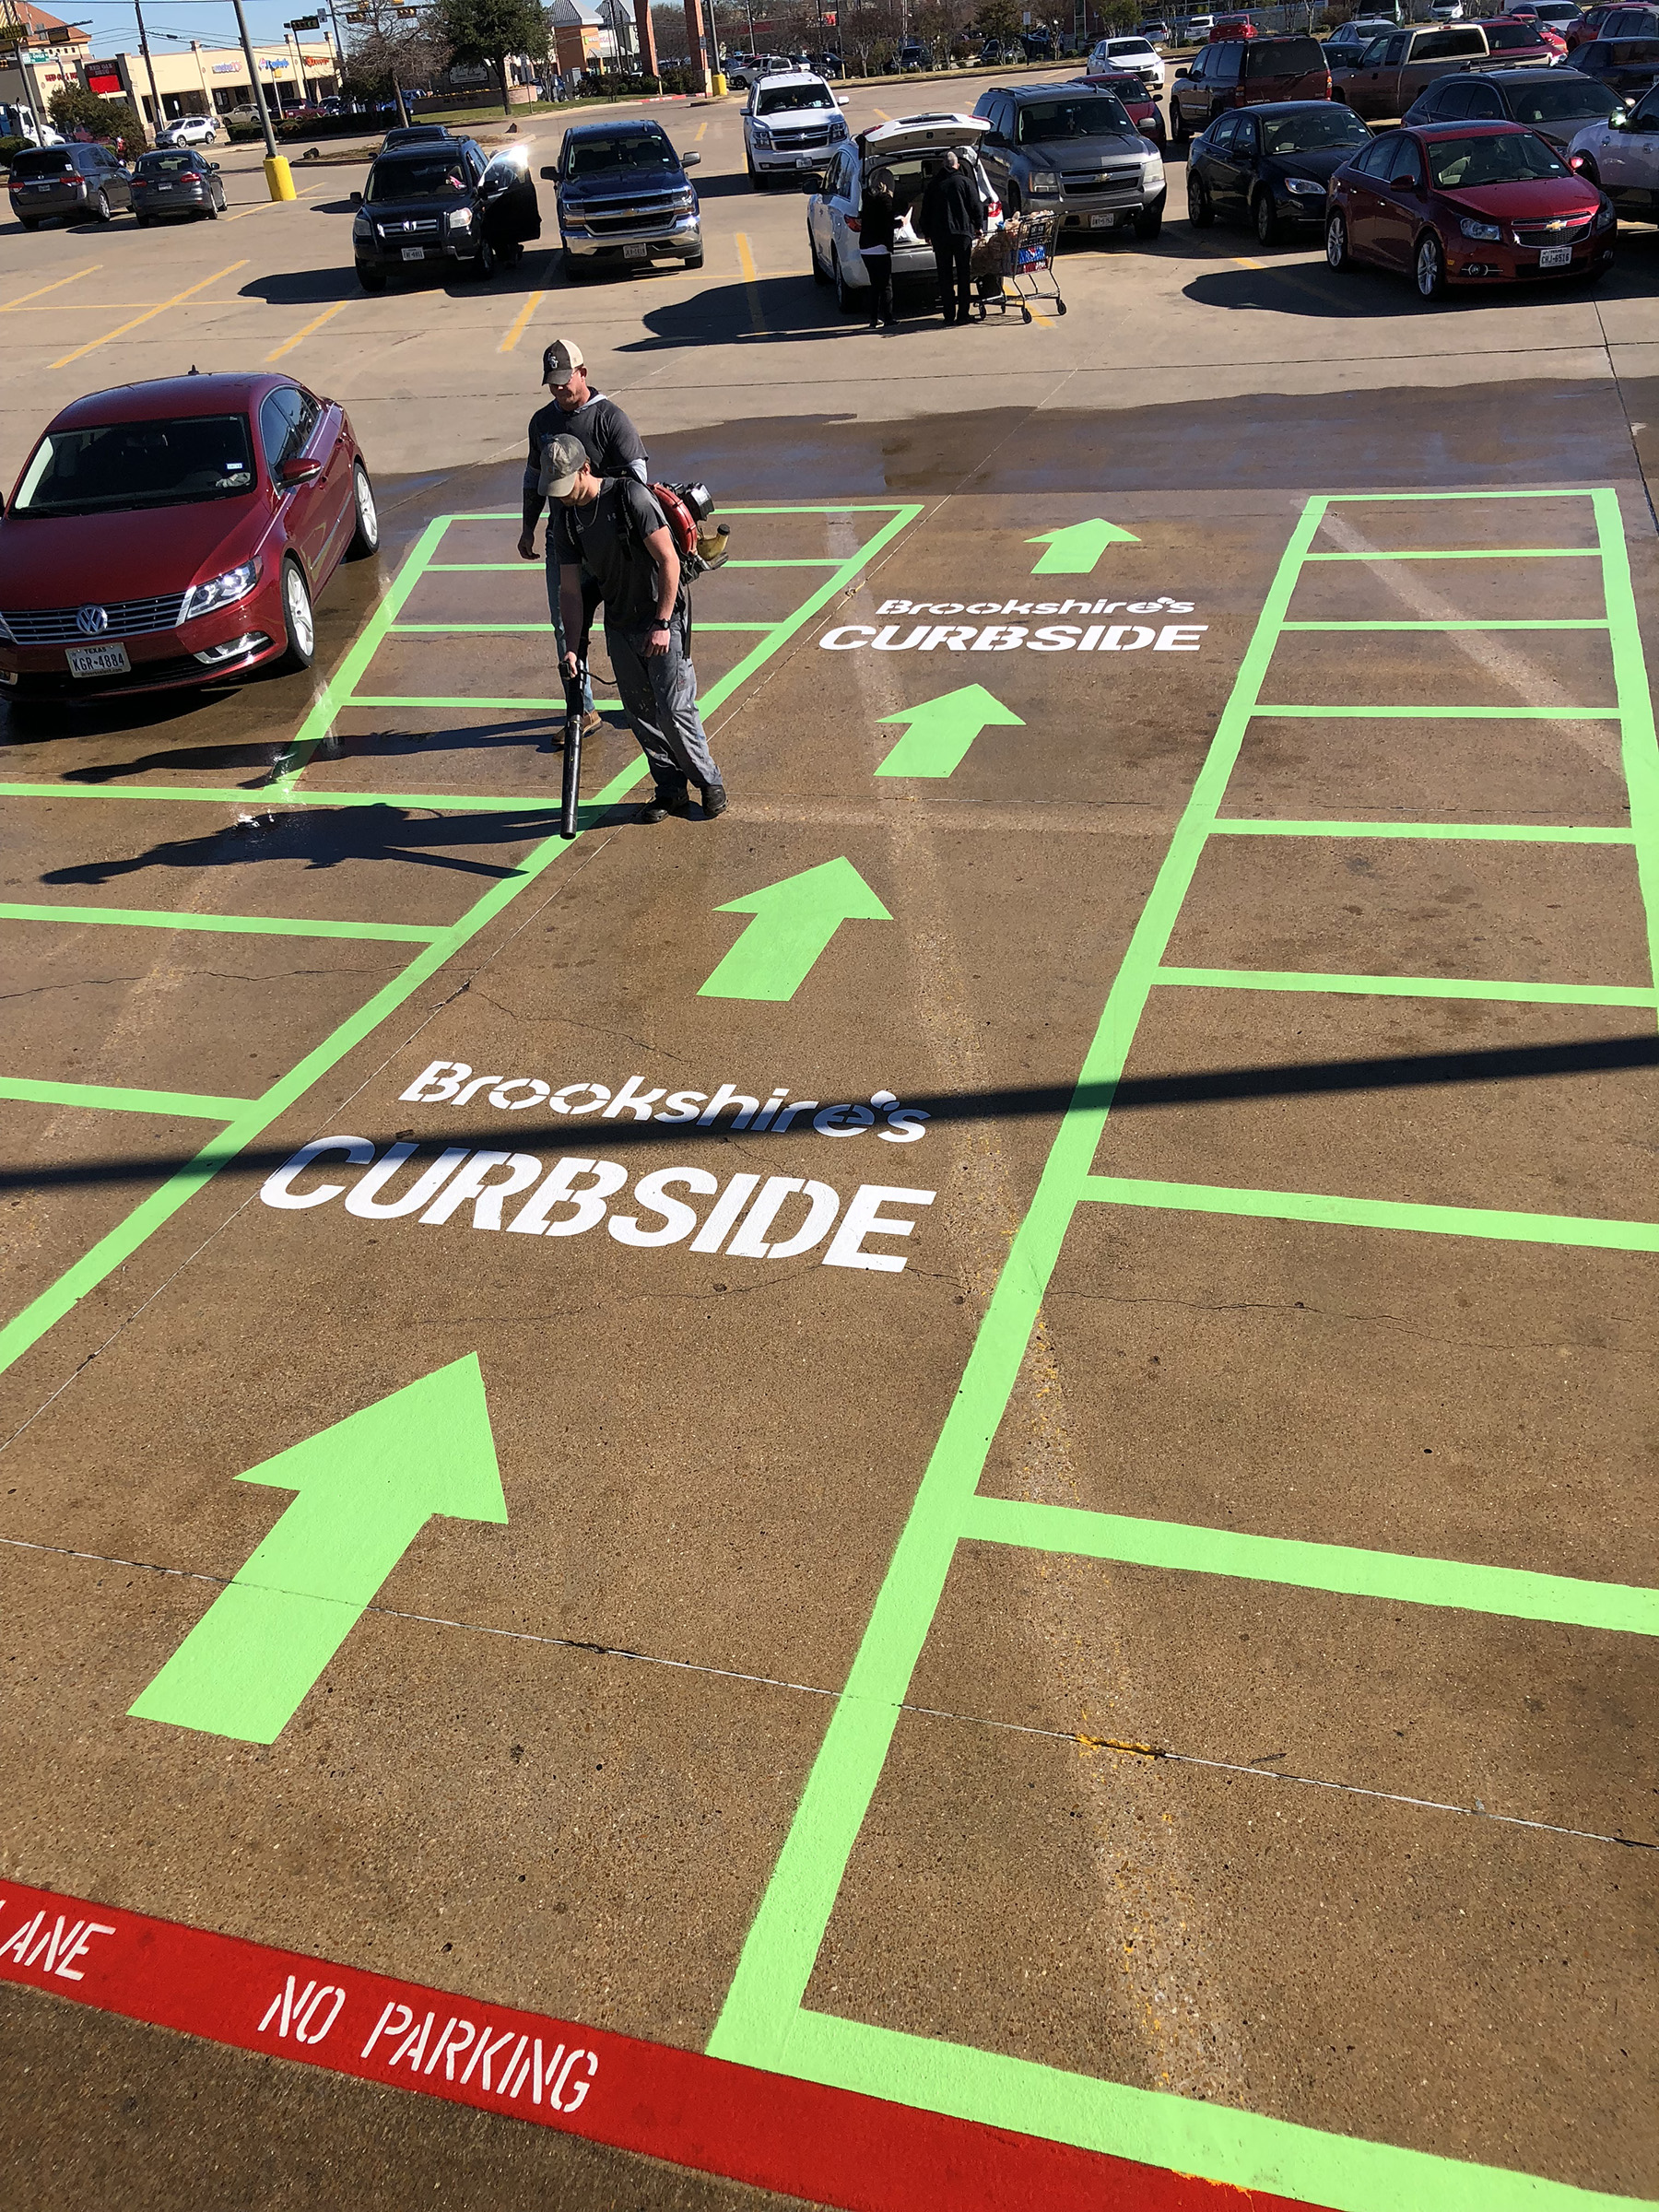 New parking lot striping